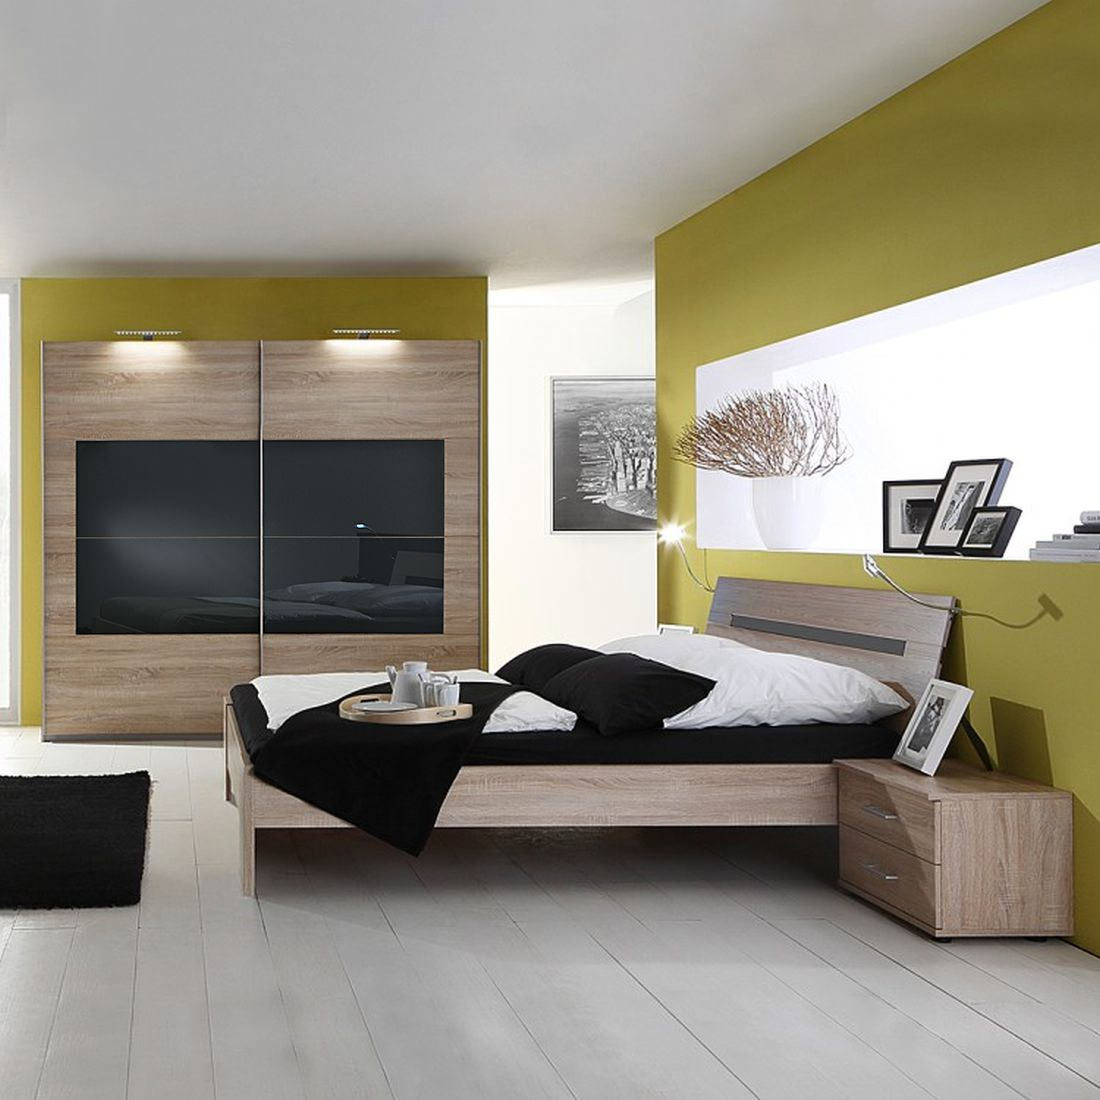 sanary schlafzimmer set eiche s gerau glas wei oakland 39 s g nstig kaufen. Black Bedroom Furniture Sets. Home Design Ideas